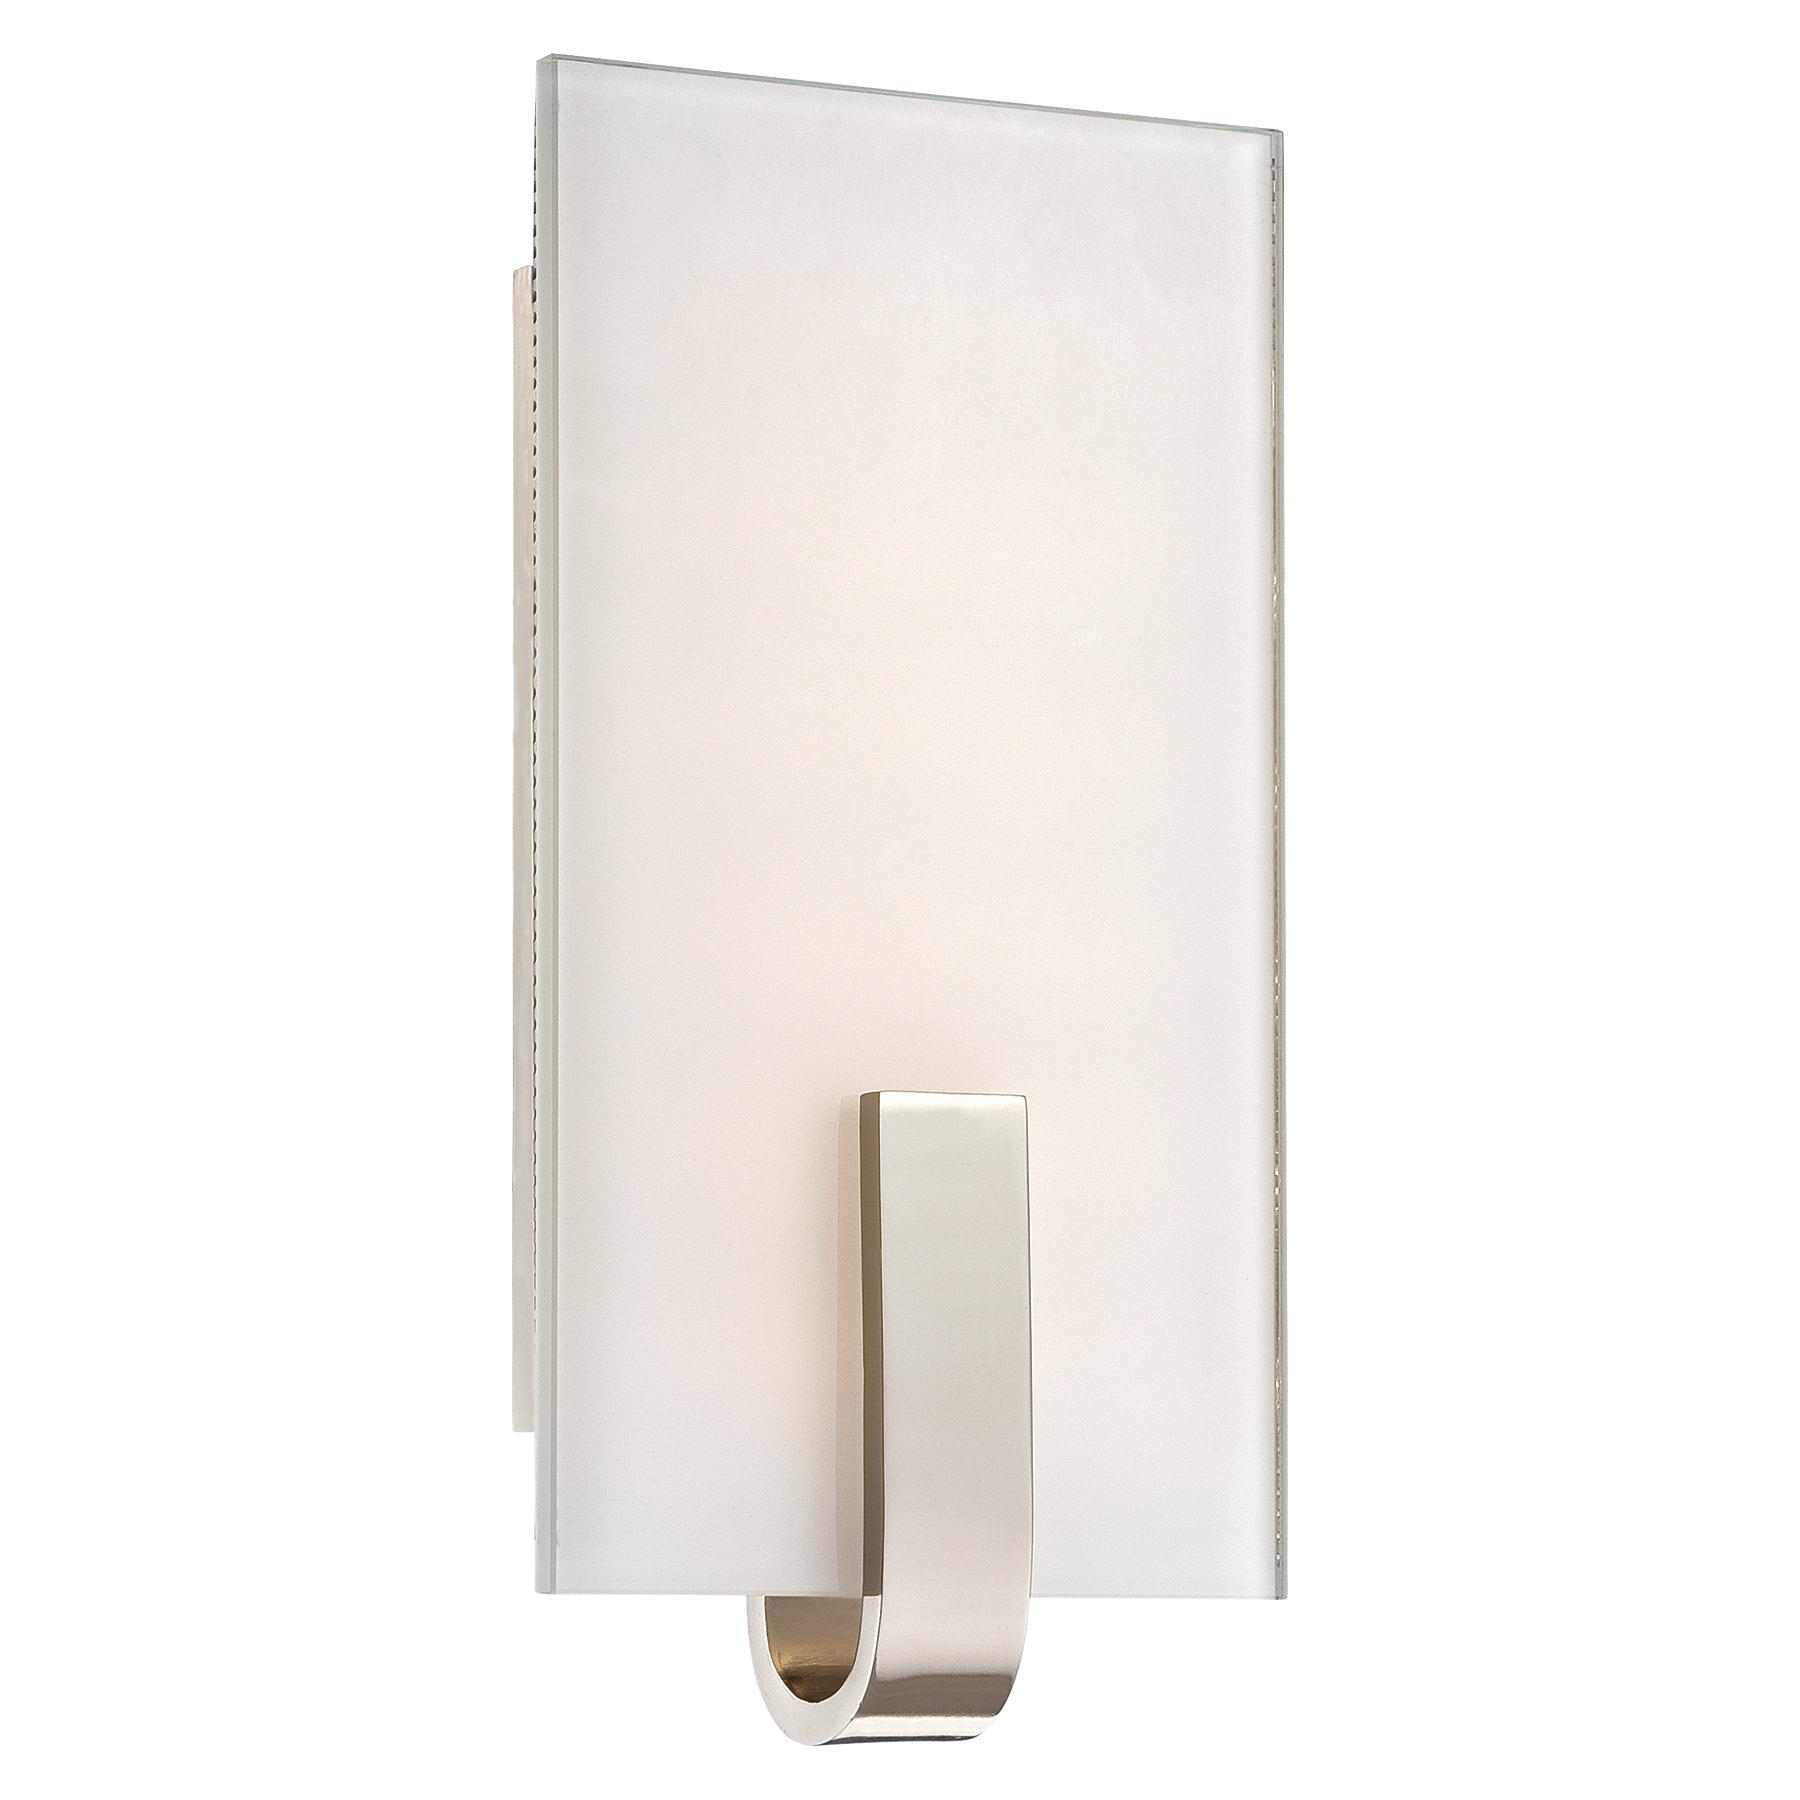 Kovacs Wall Sconces : P1140 LED Wall Sconce by George Kovacs P1140-613-L